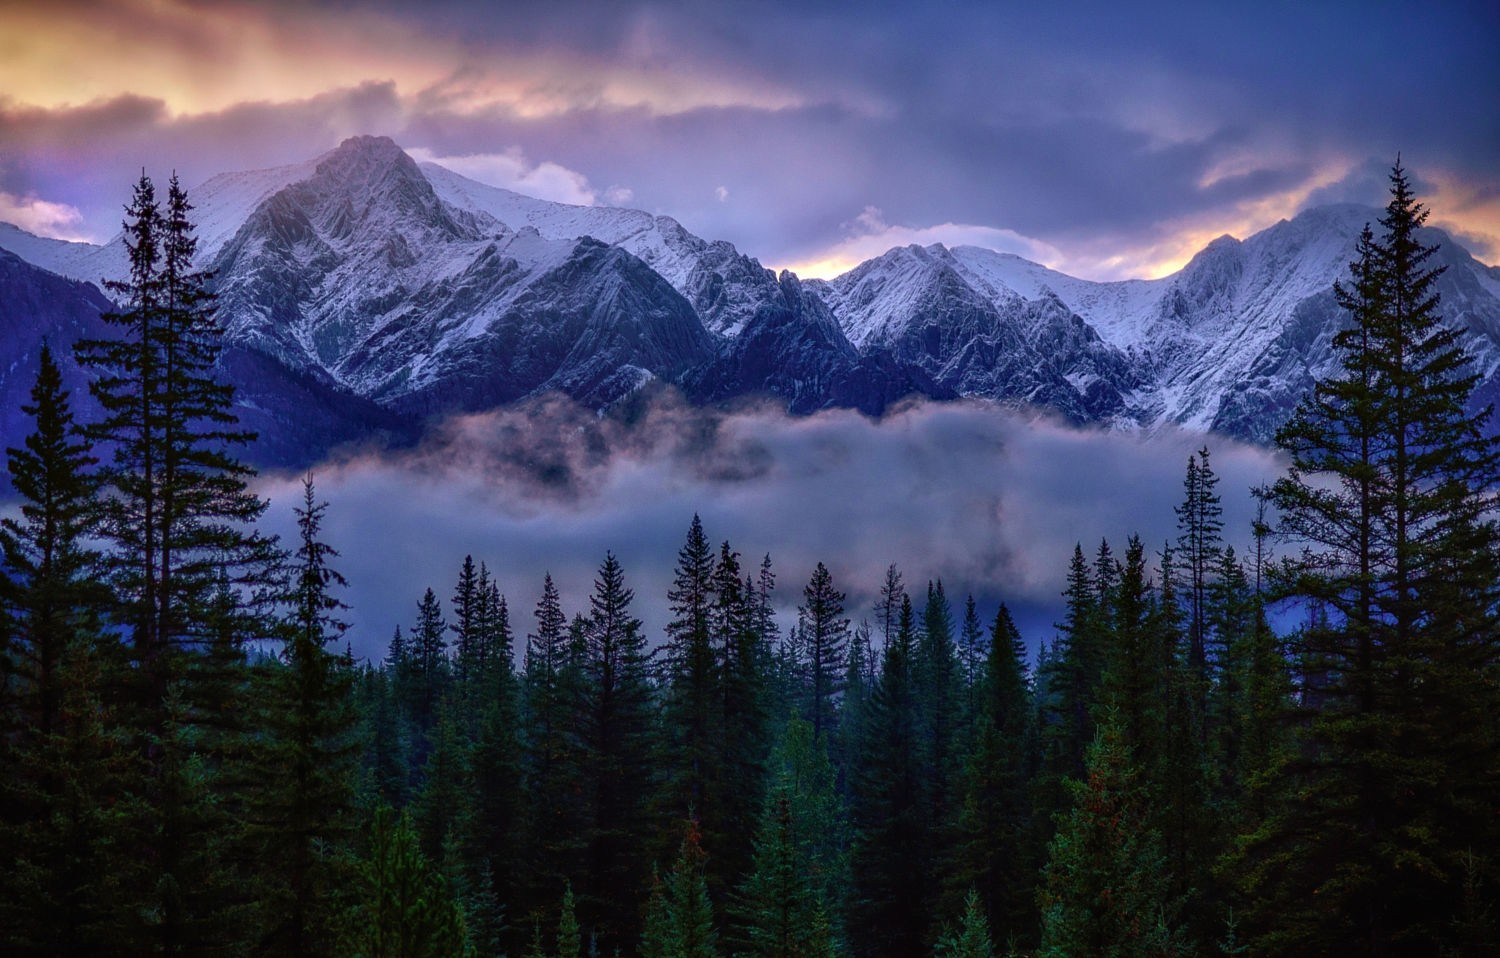 New 3d Abstract Wallpapers Photography Nature Landscape Snowy Peak Mountains